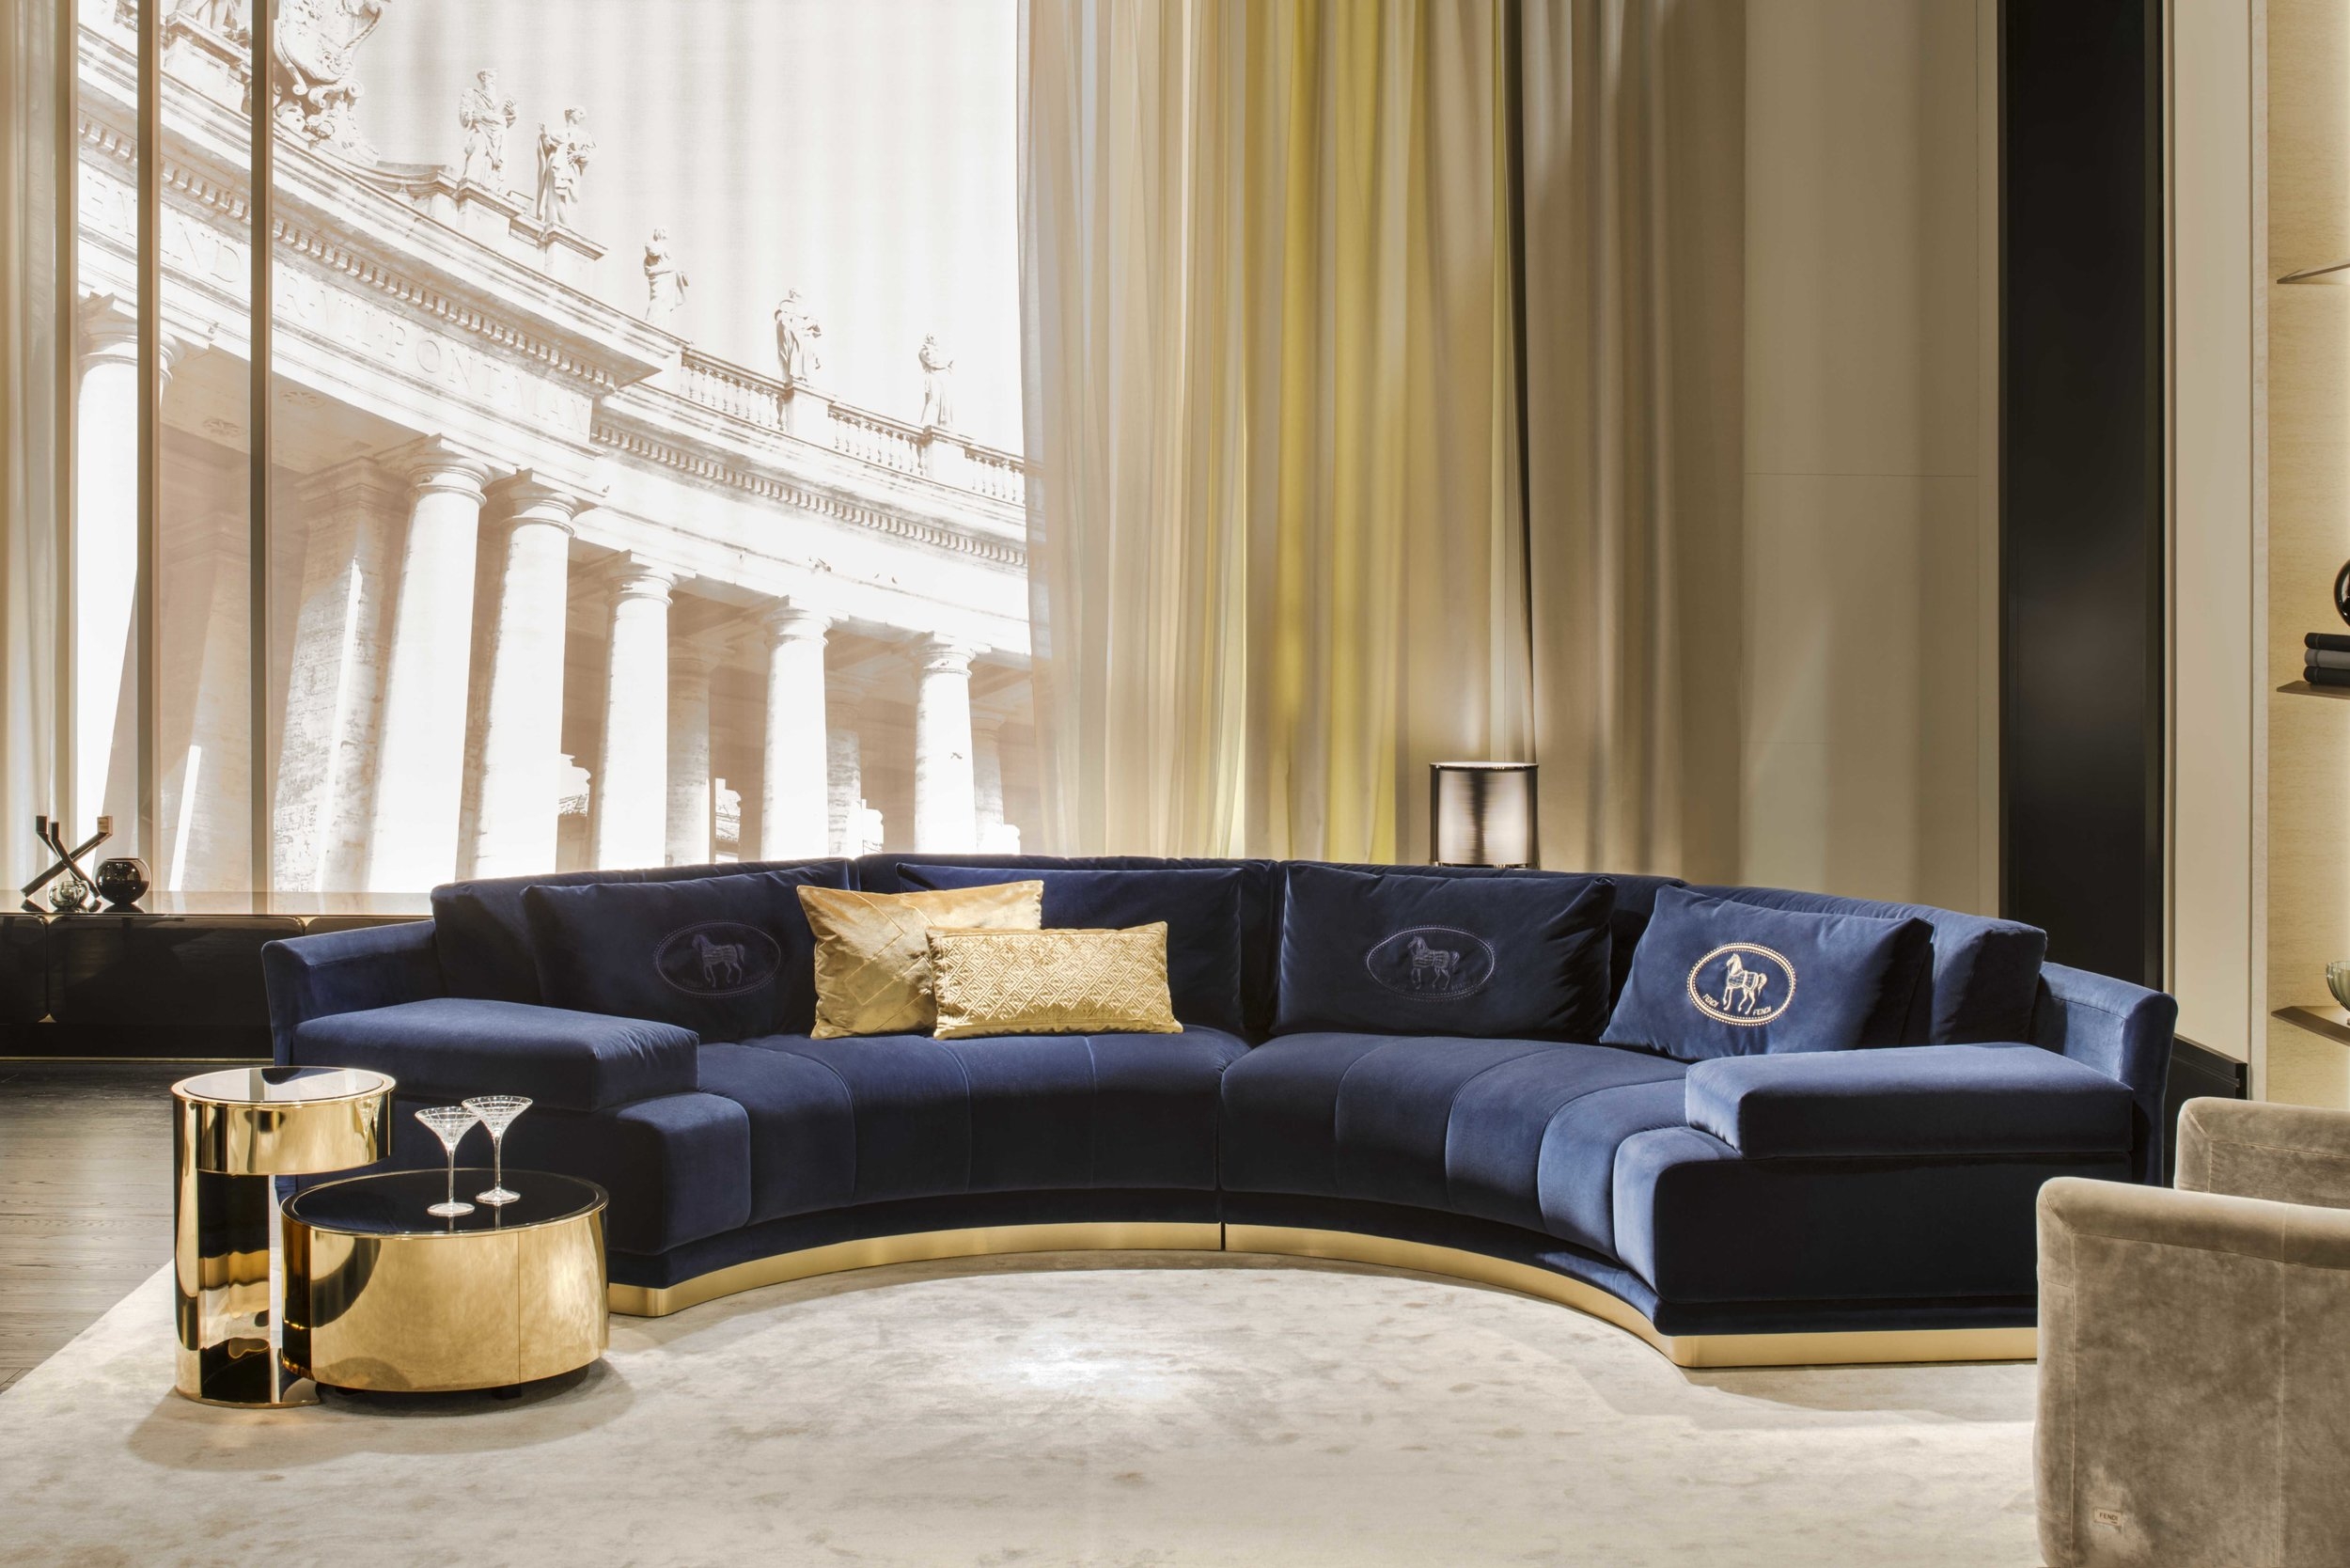 Fendi Artu round sectional sofa.jpg